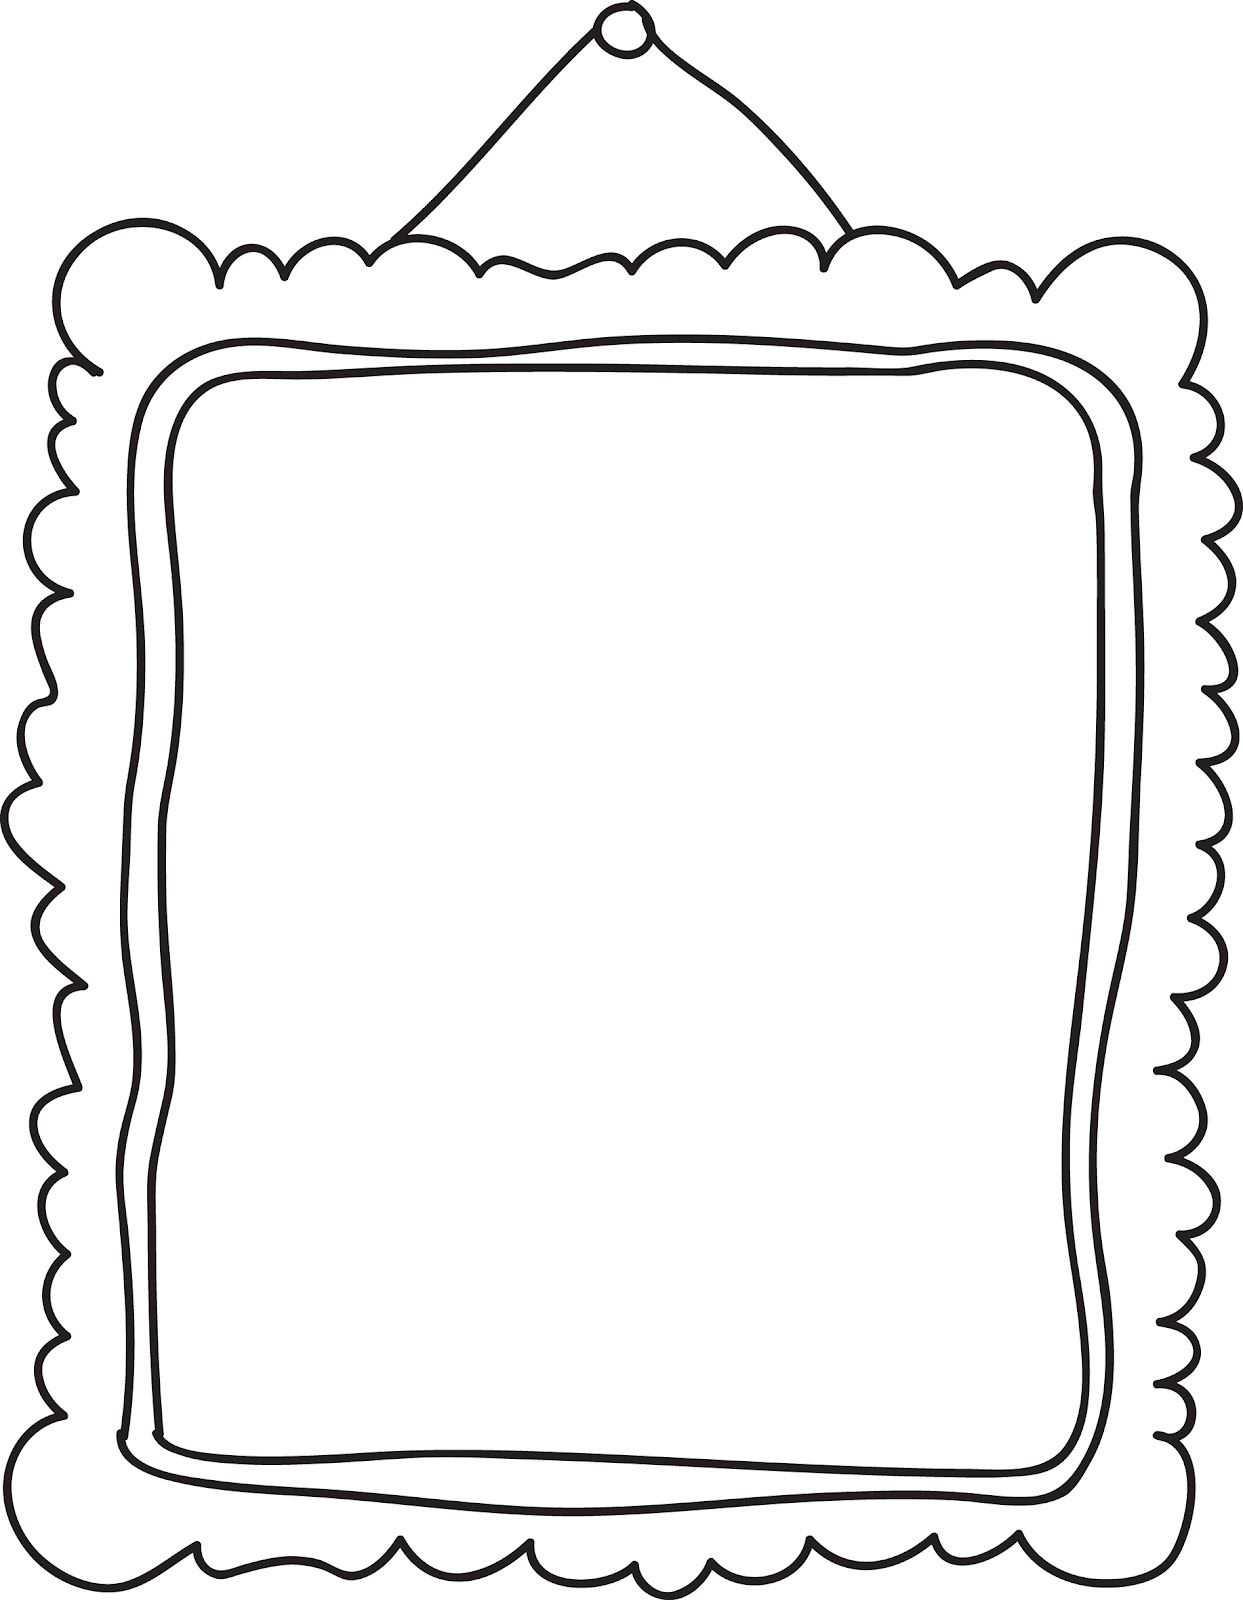 digital frames vector clipart black and white - Google Search ...